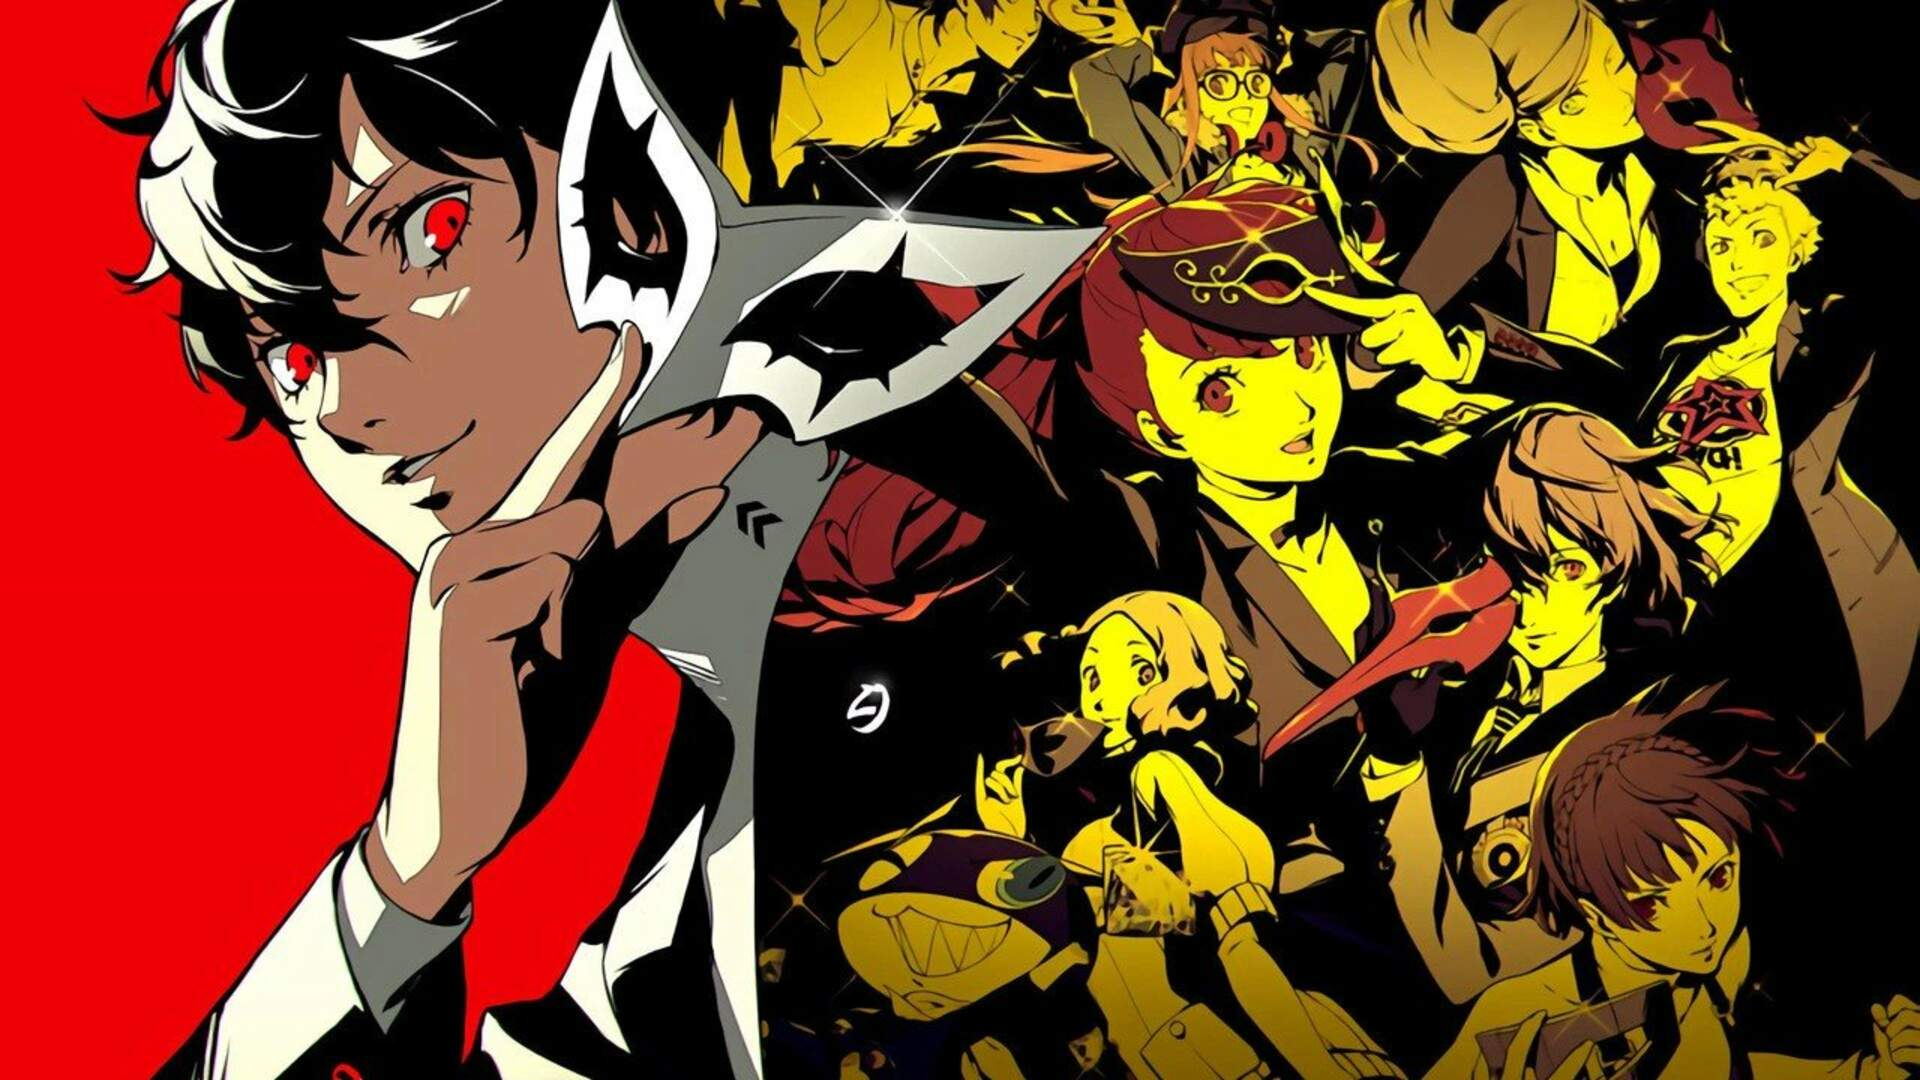 Persona 5 Royal's Cries for Justice Resonate More Than Ever